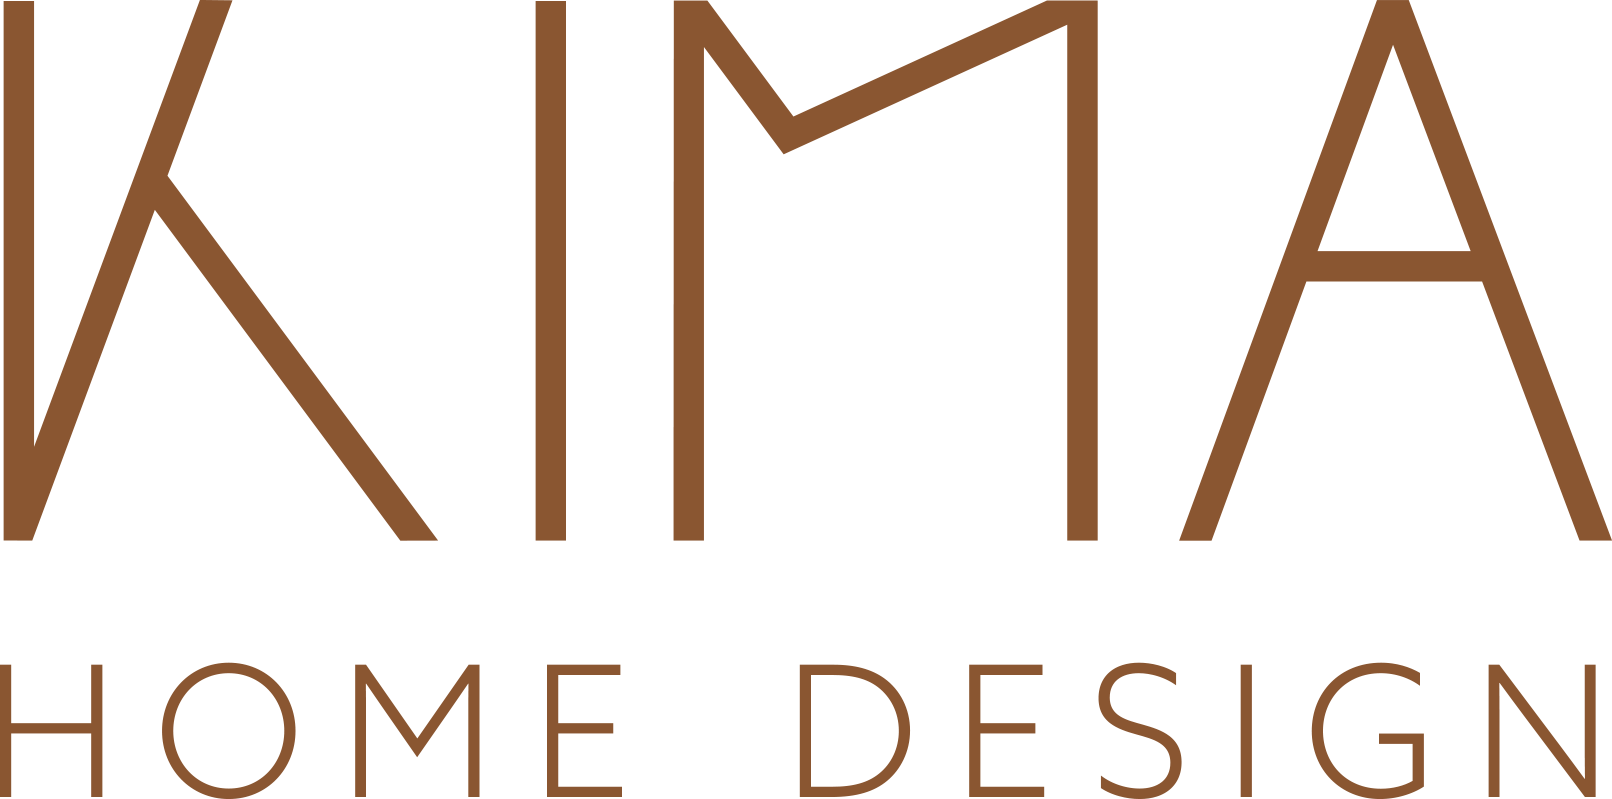 Kima Home Design